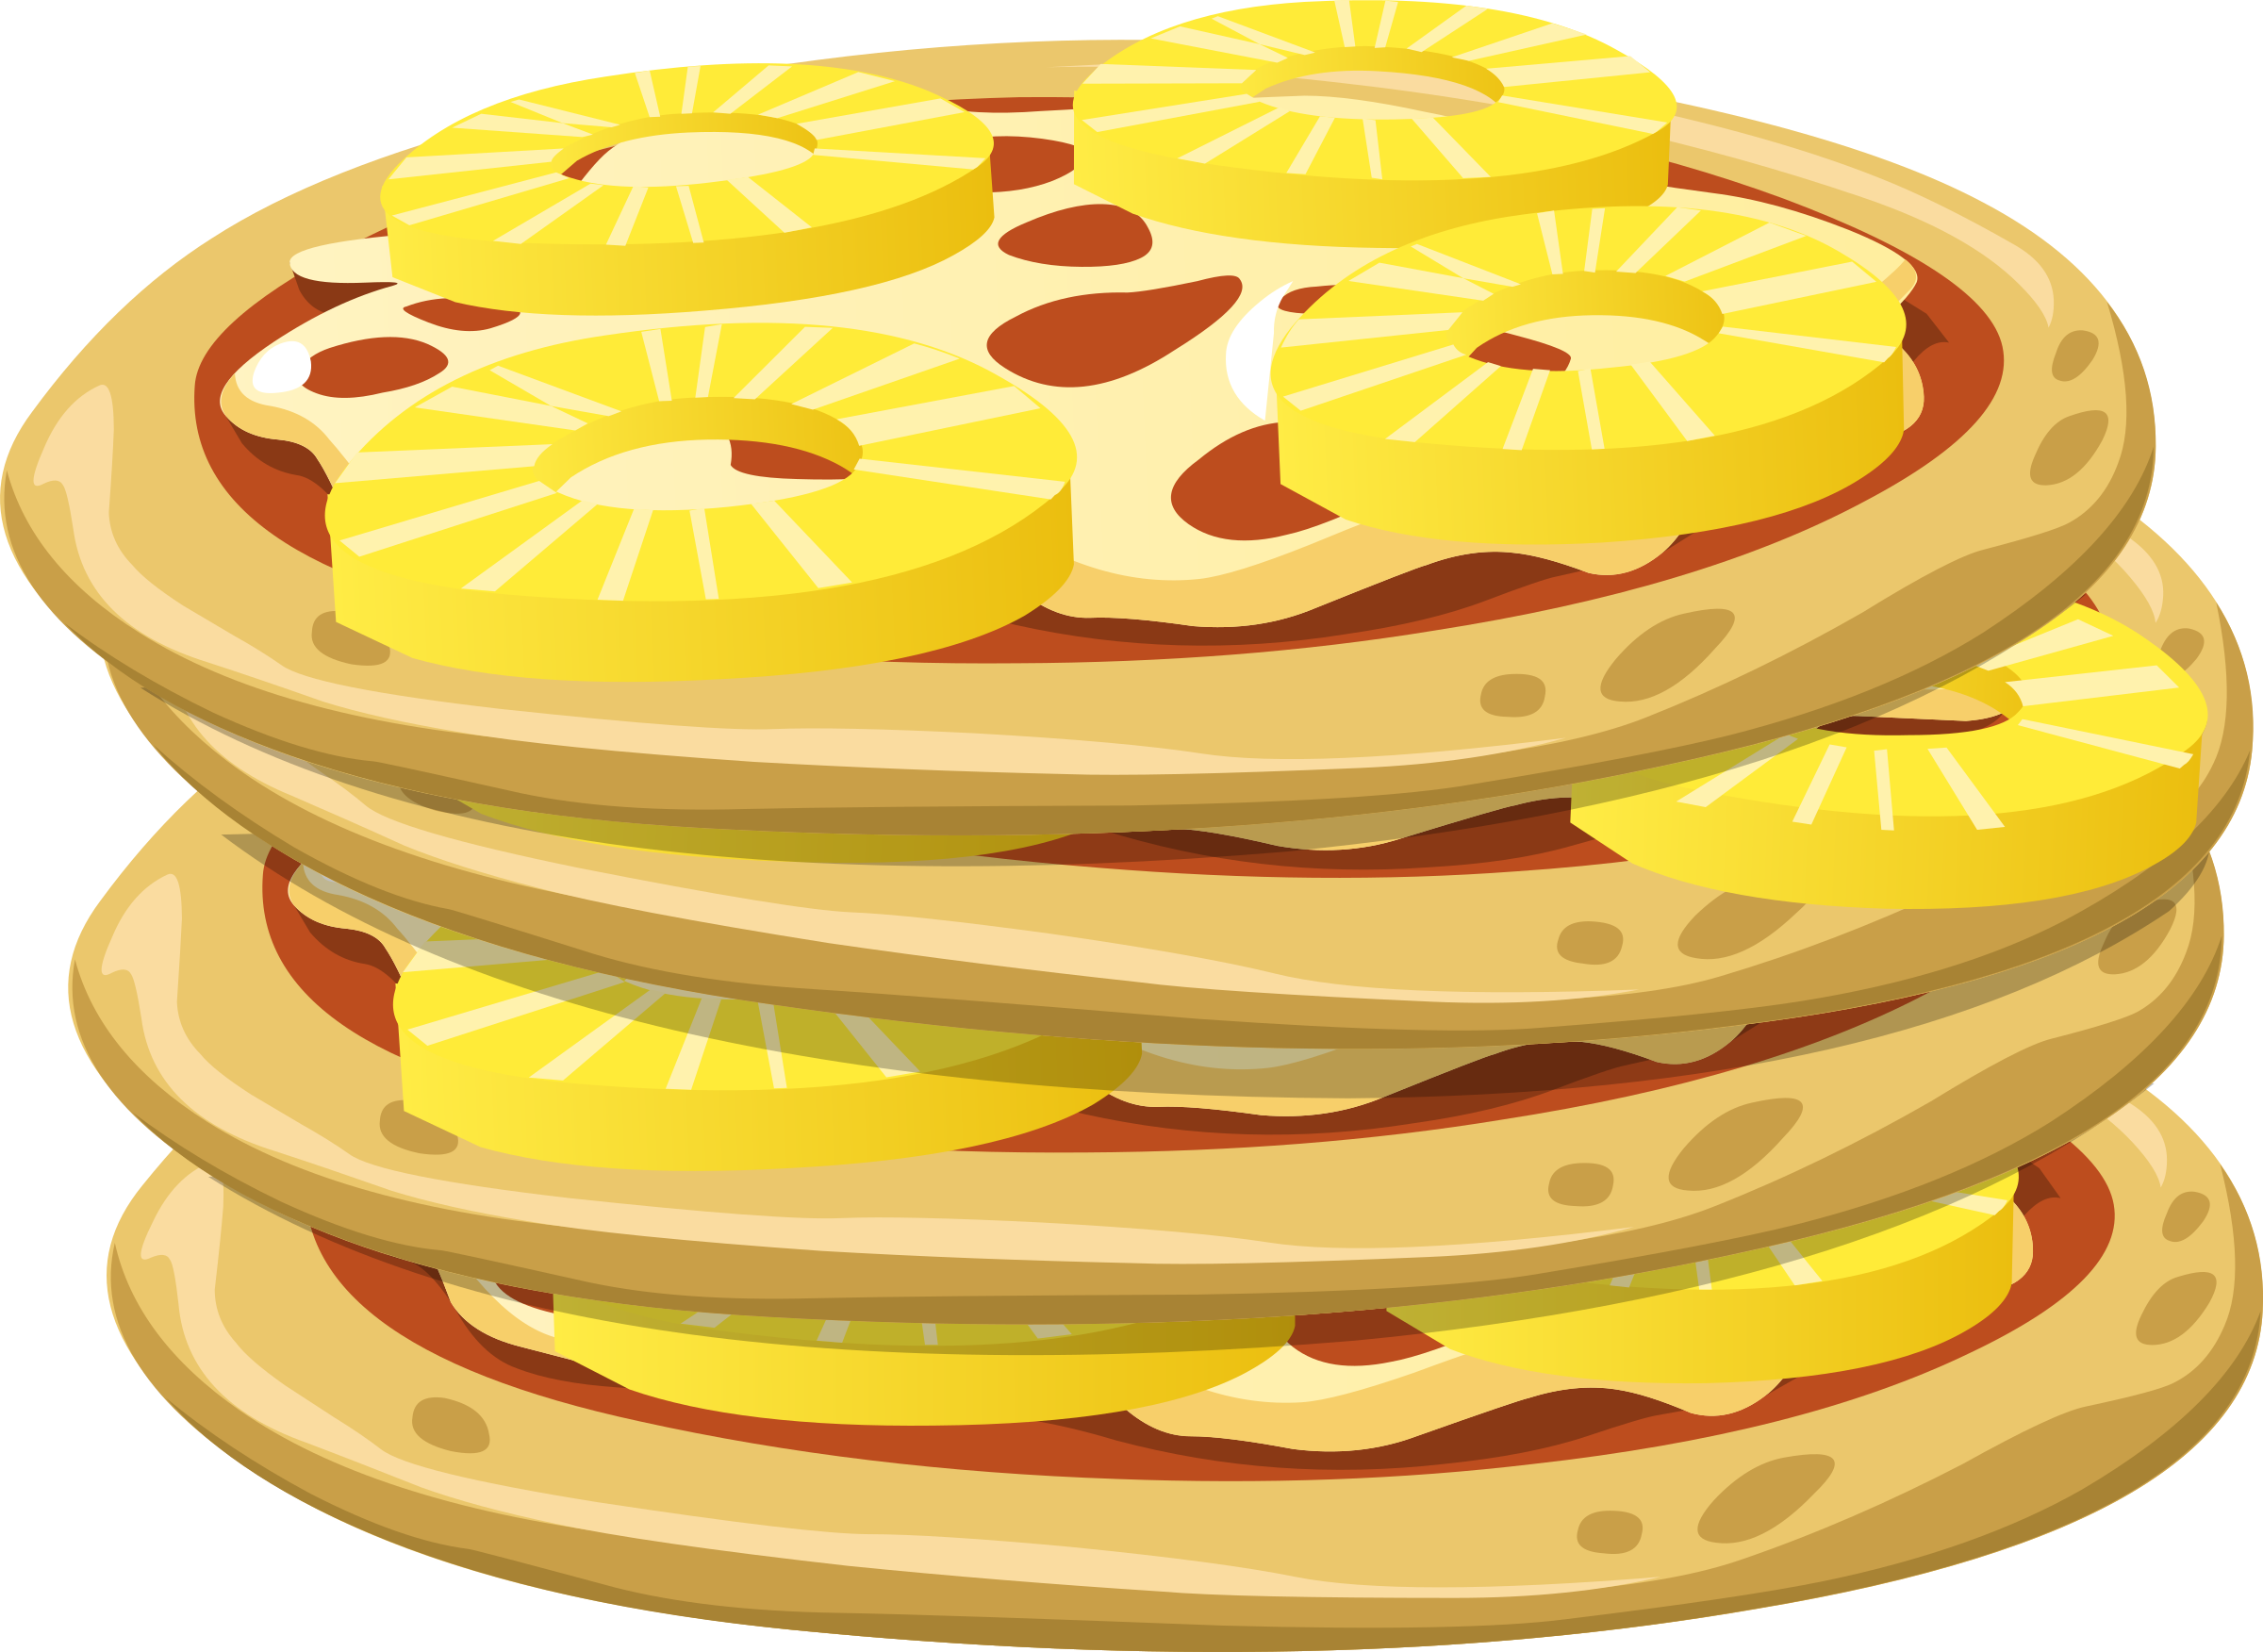 Food Papl Upside Down Pizza by glitch